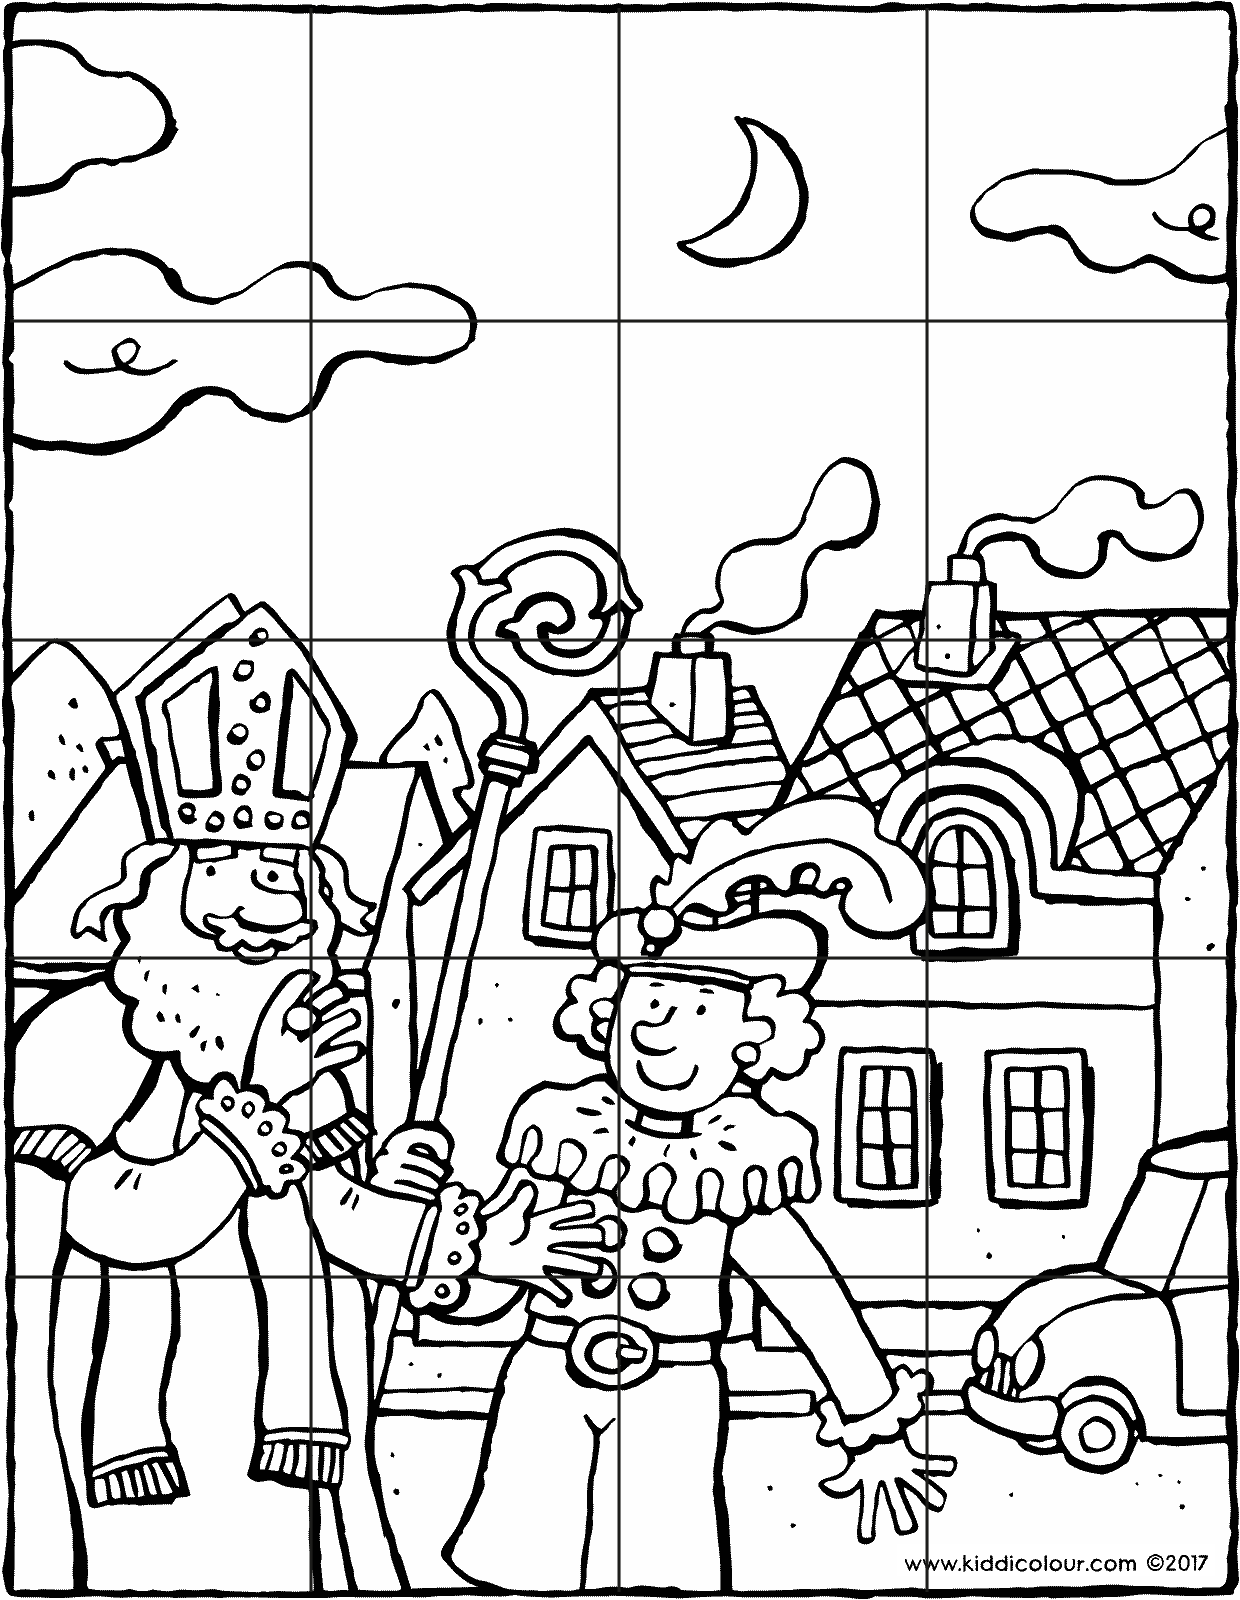 Saint Nicholas and Black Pete puzzle colouring page drawing picture 01V